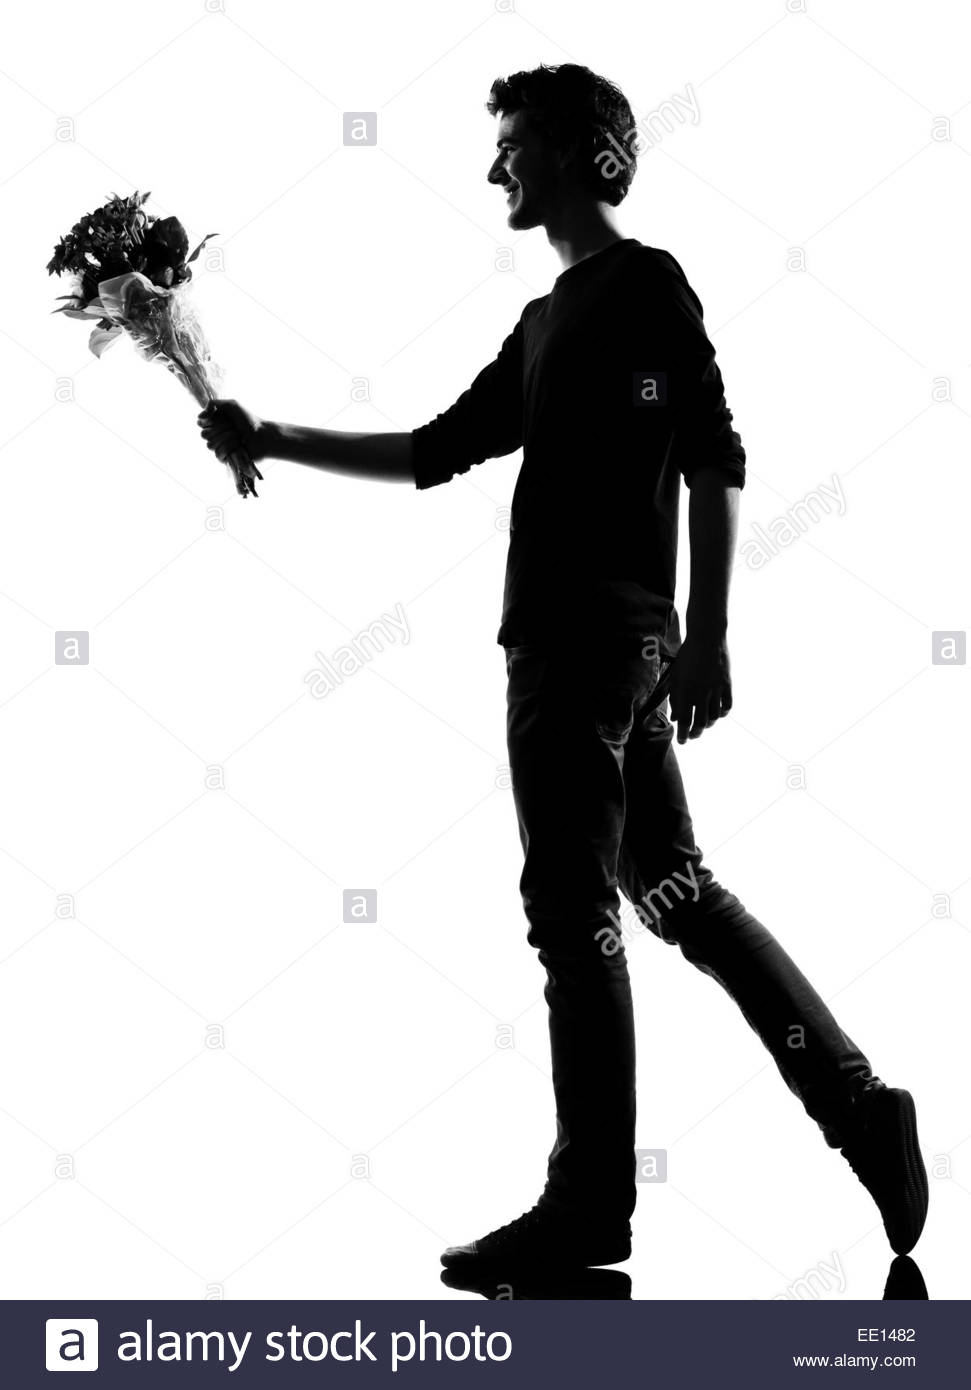 971x1390 Young Man Offering Flowers Bouquet Silhouette In Studio Isolated